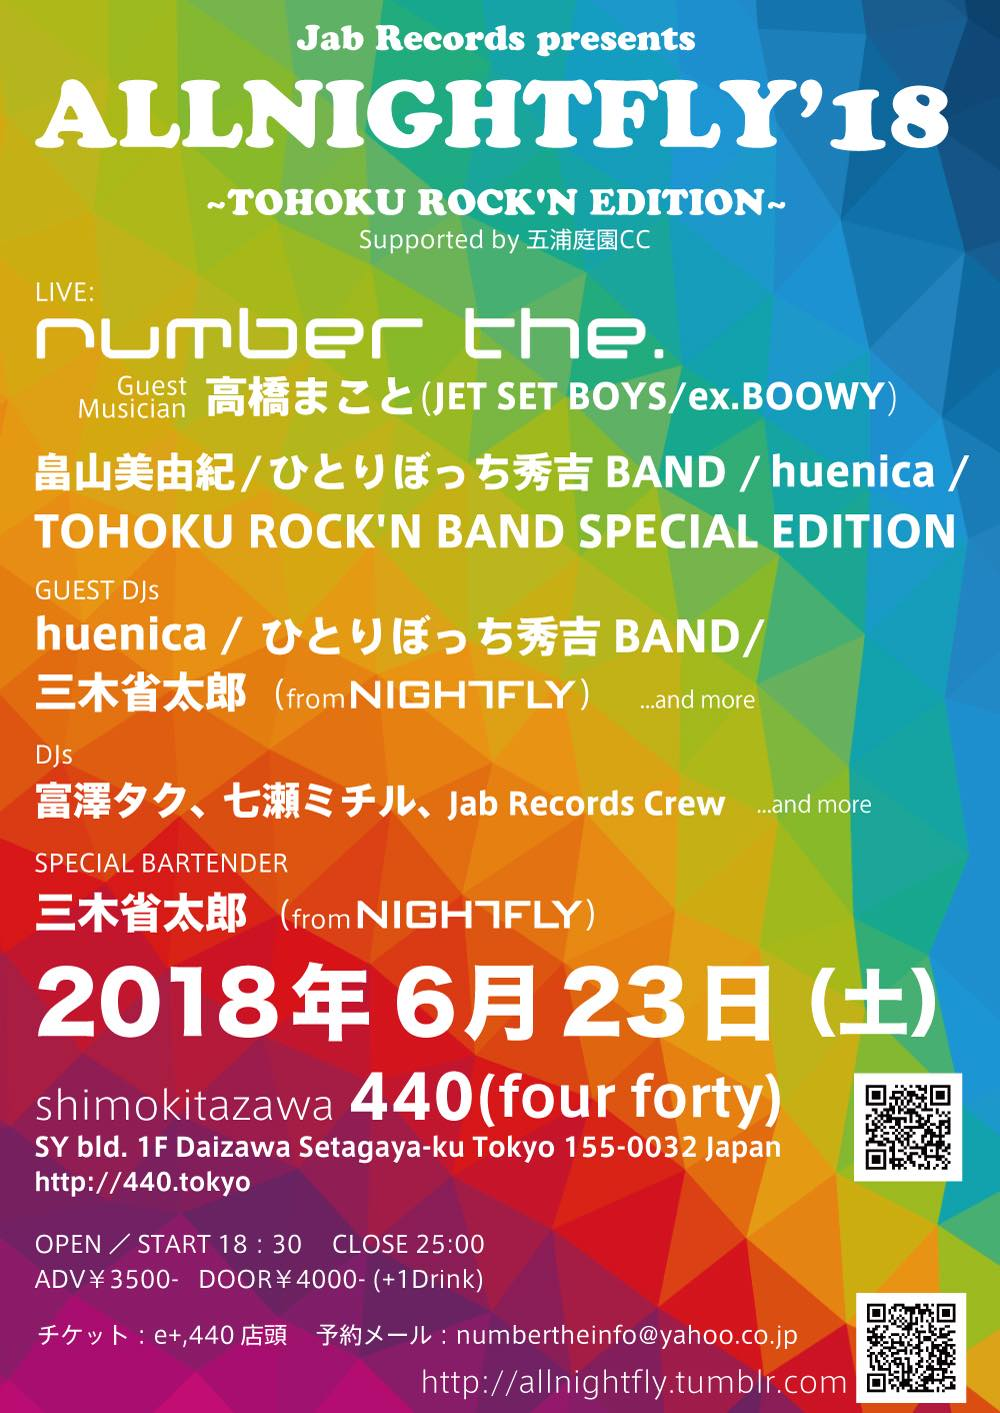 Jab Records presents ALLNIGHTFLY'18 ~TOHOKU ROCK'N EDITION~ Supported by 五浦庭園CC